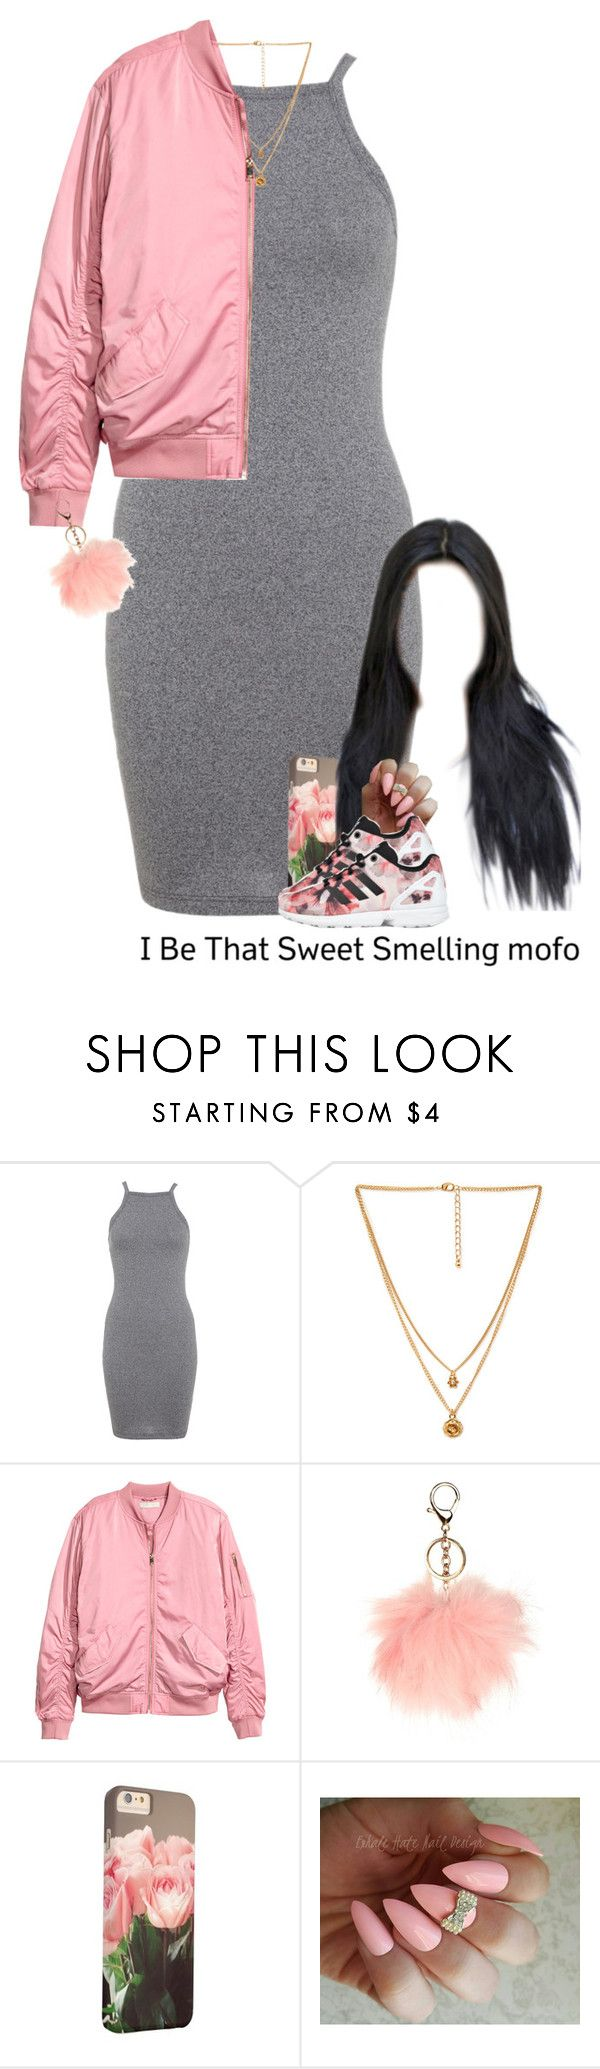 """9-21-16"" by asilversmile ❤ liked on Polyvore featuring Miss Selfridge, Forever 21, H&M and adidas Originals"